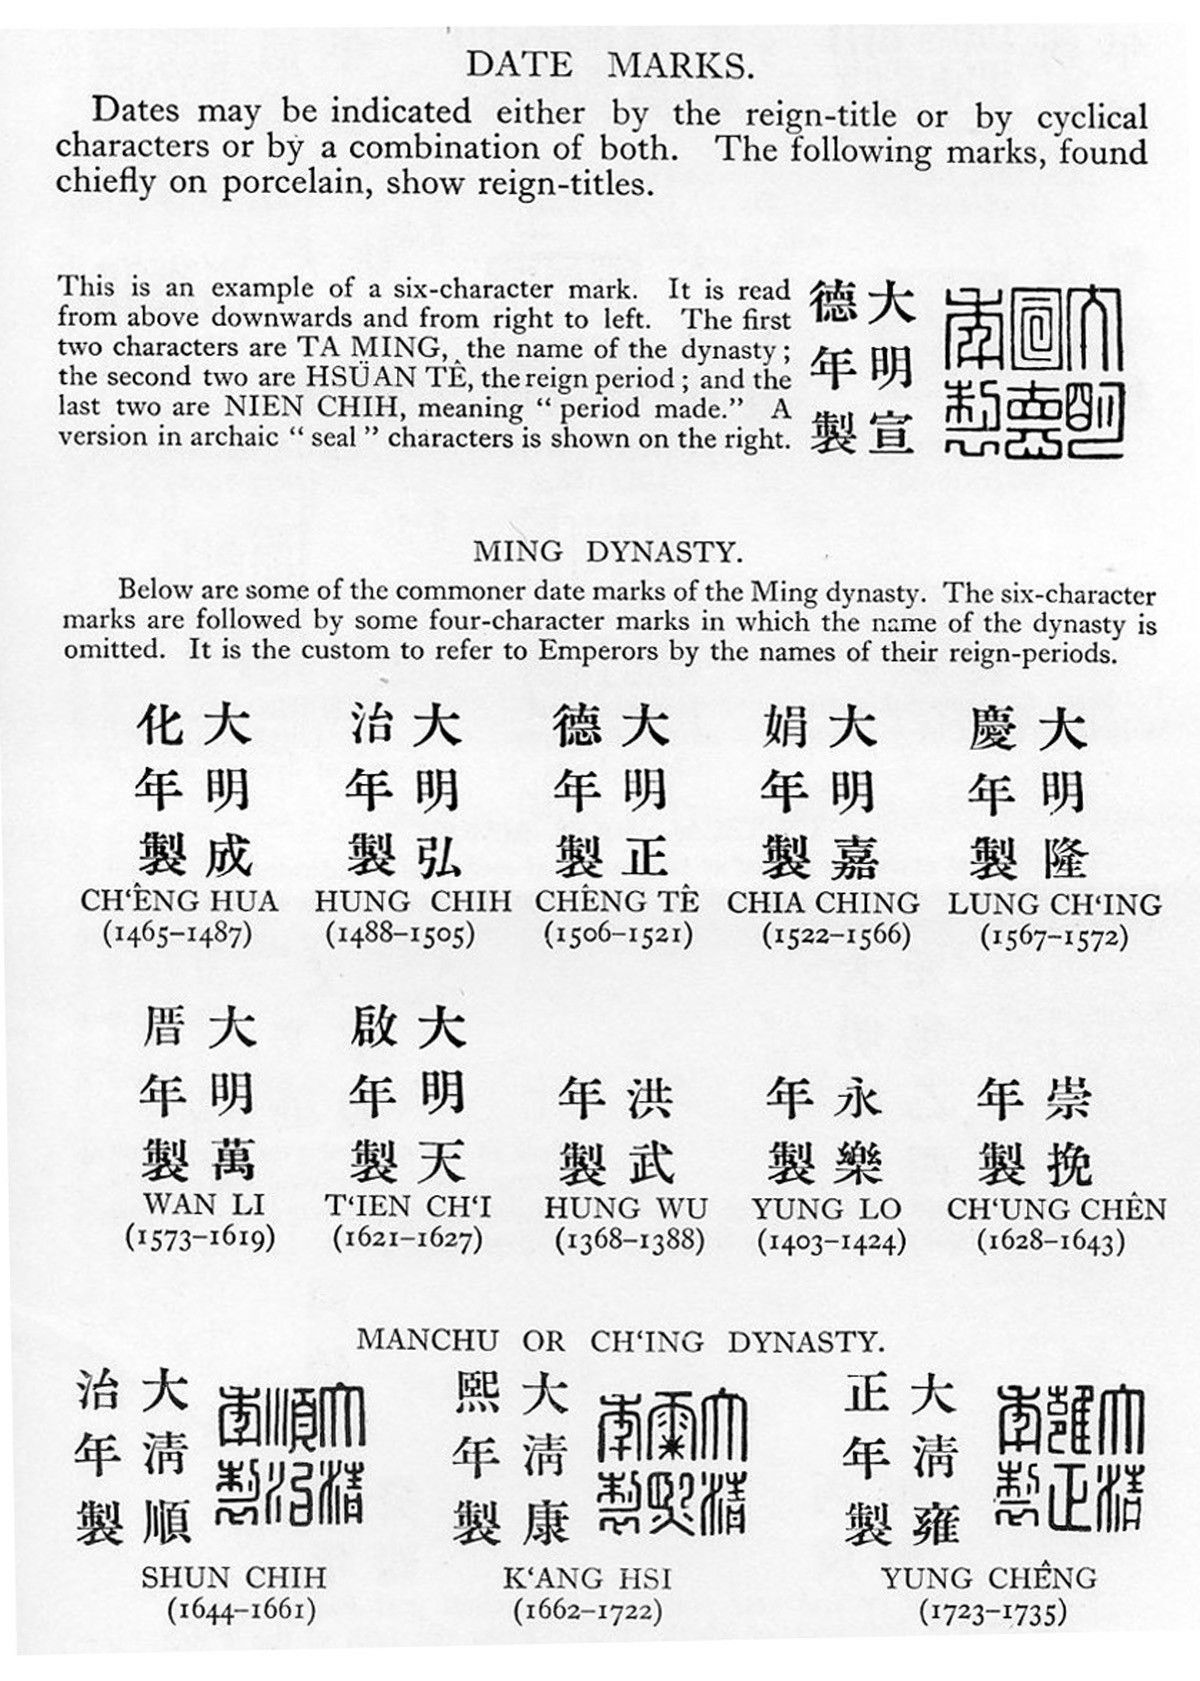 1488 meaning - Chinese Pottery Marks Identification Pinterest Pottery Marks And Image Search